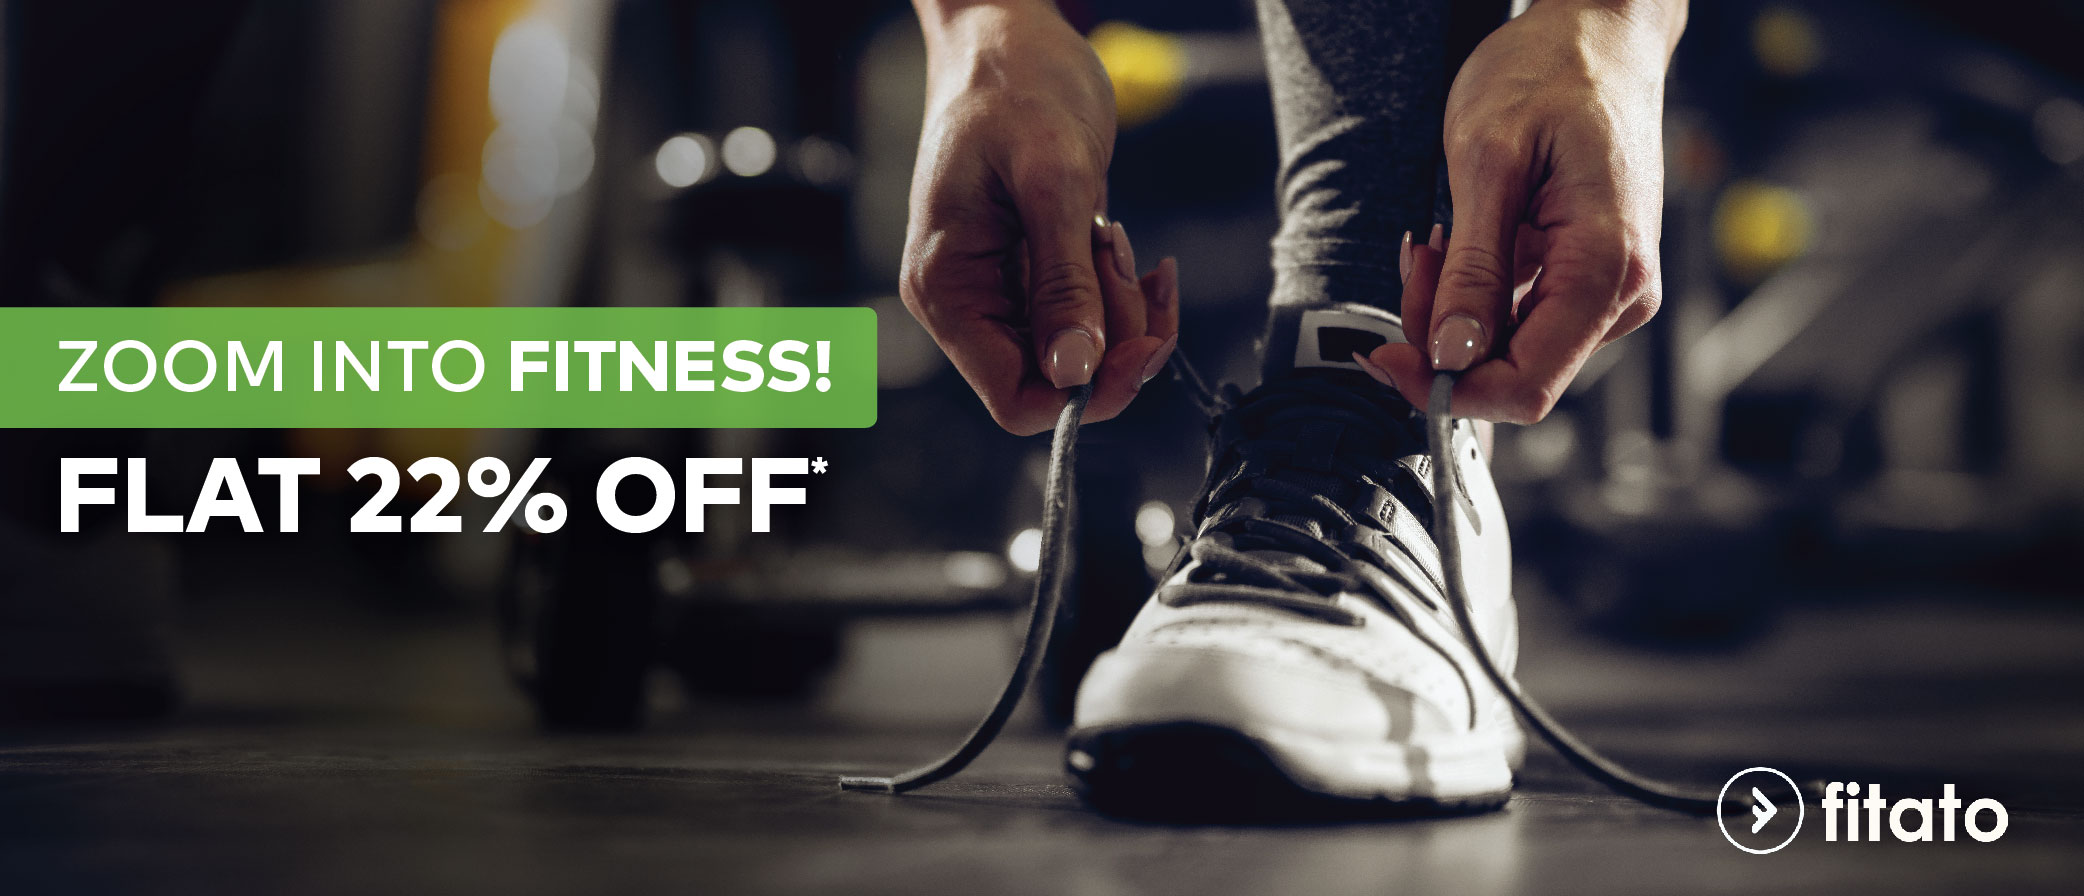 <b>Get 22% OFF on all your Fitness needs atFitato!</b><br>